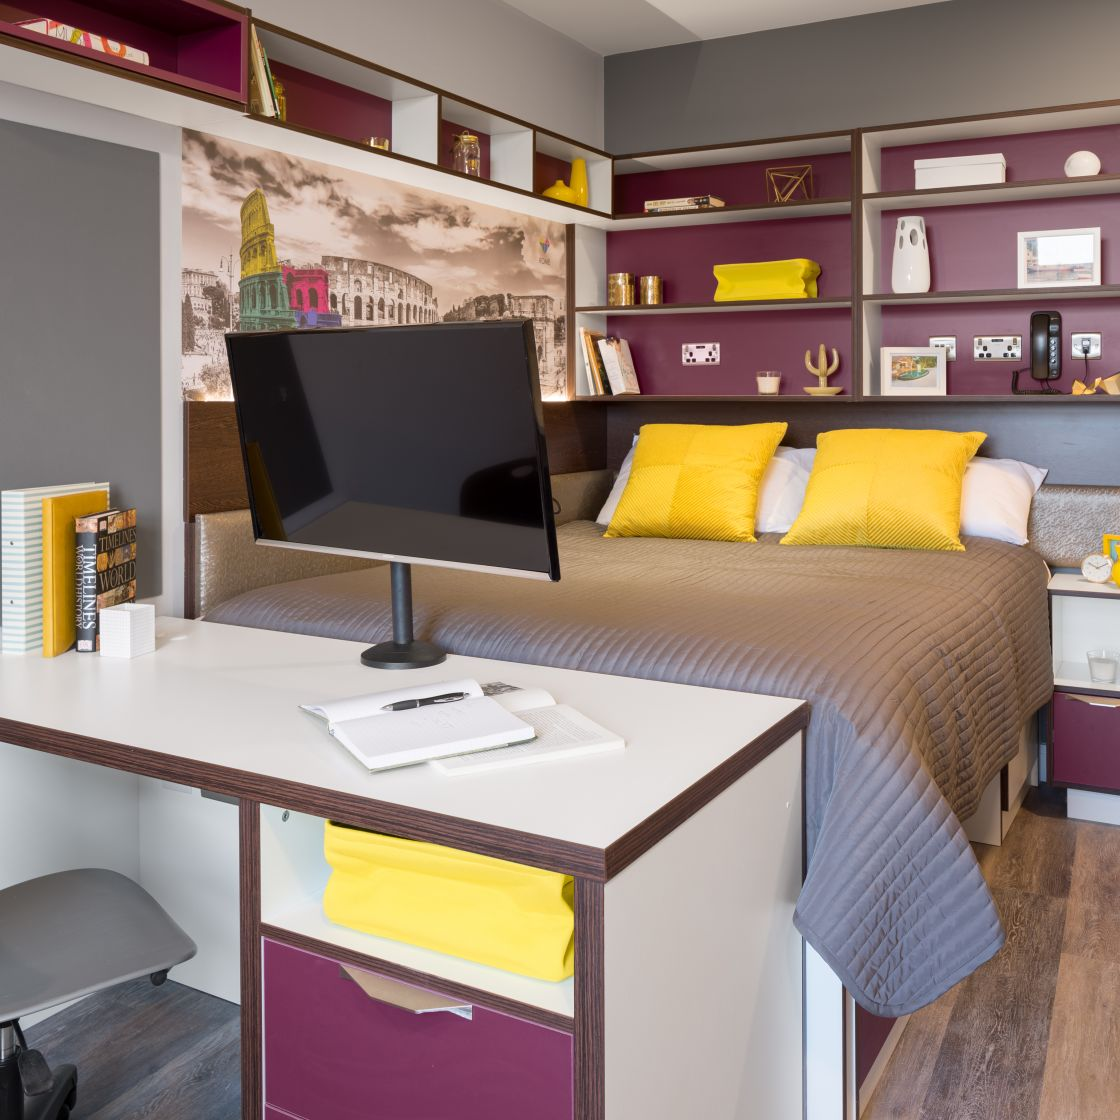 Elegance Student Apartment in Liverpool. Double Bed and Desk. IconInc, The Ascent